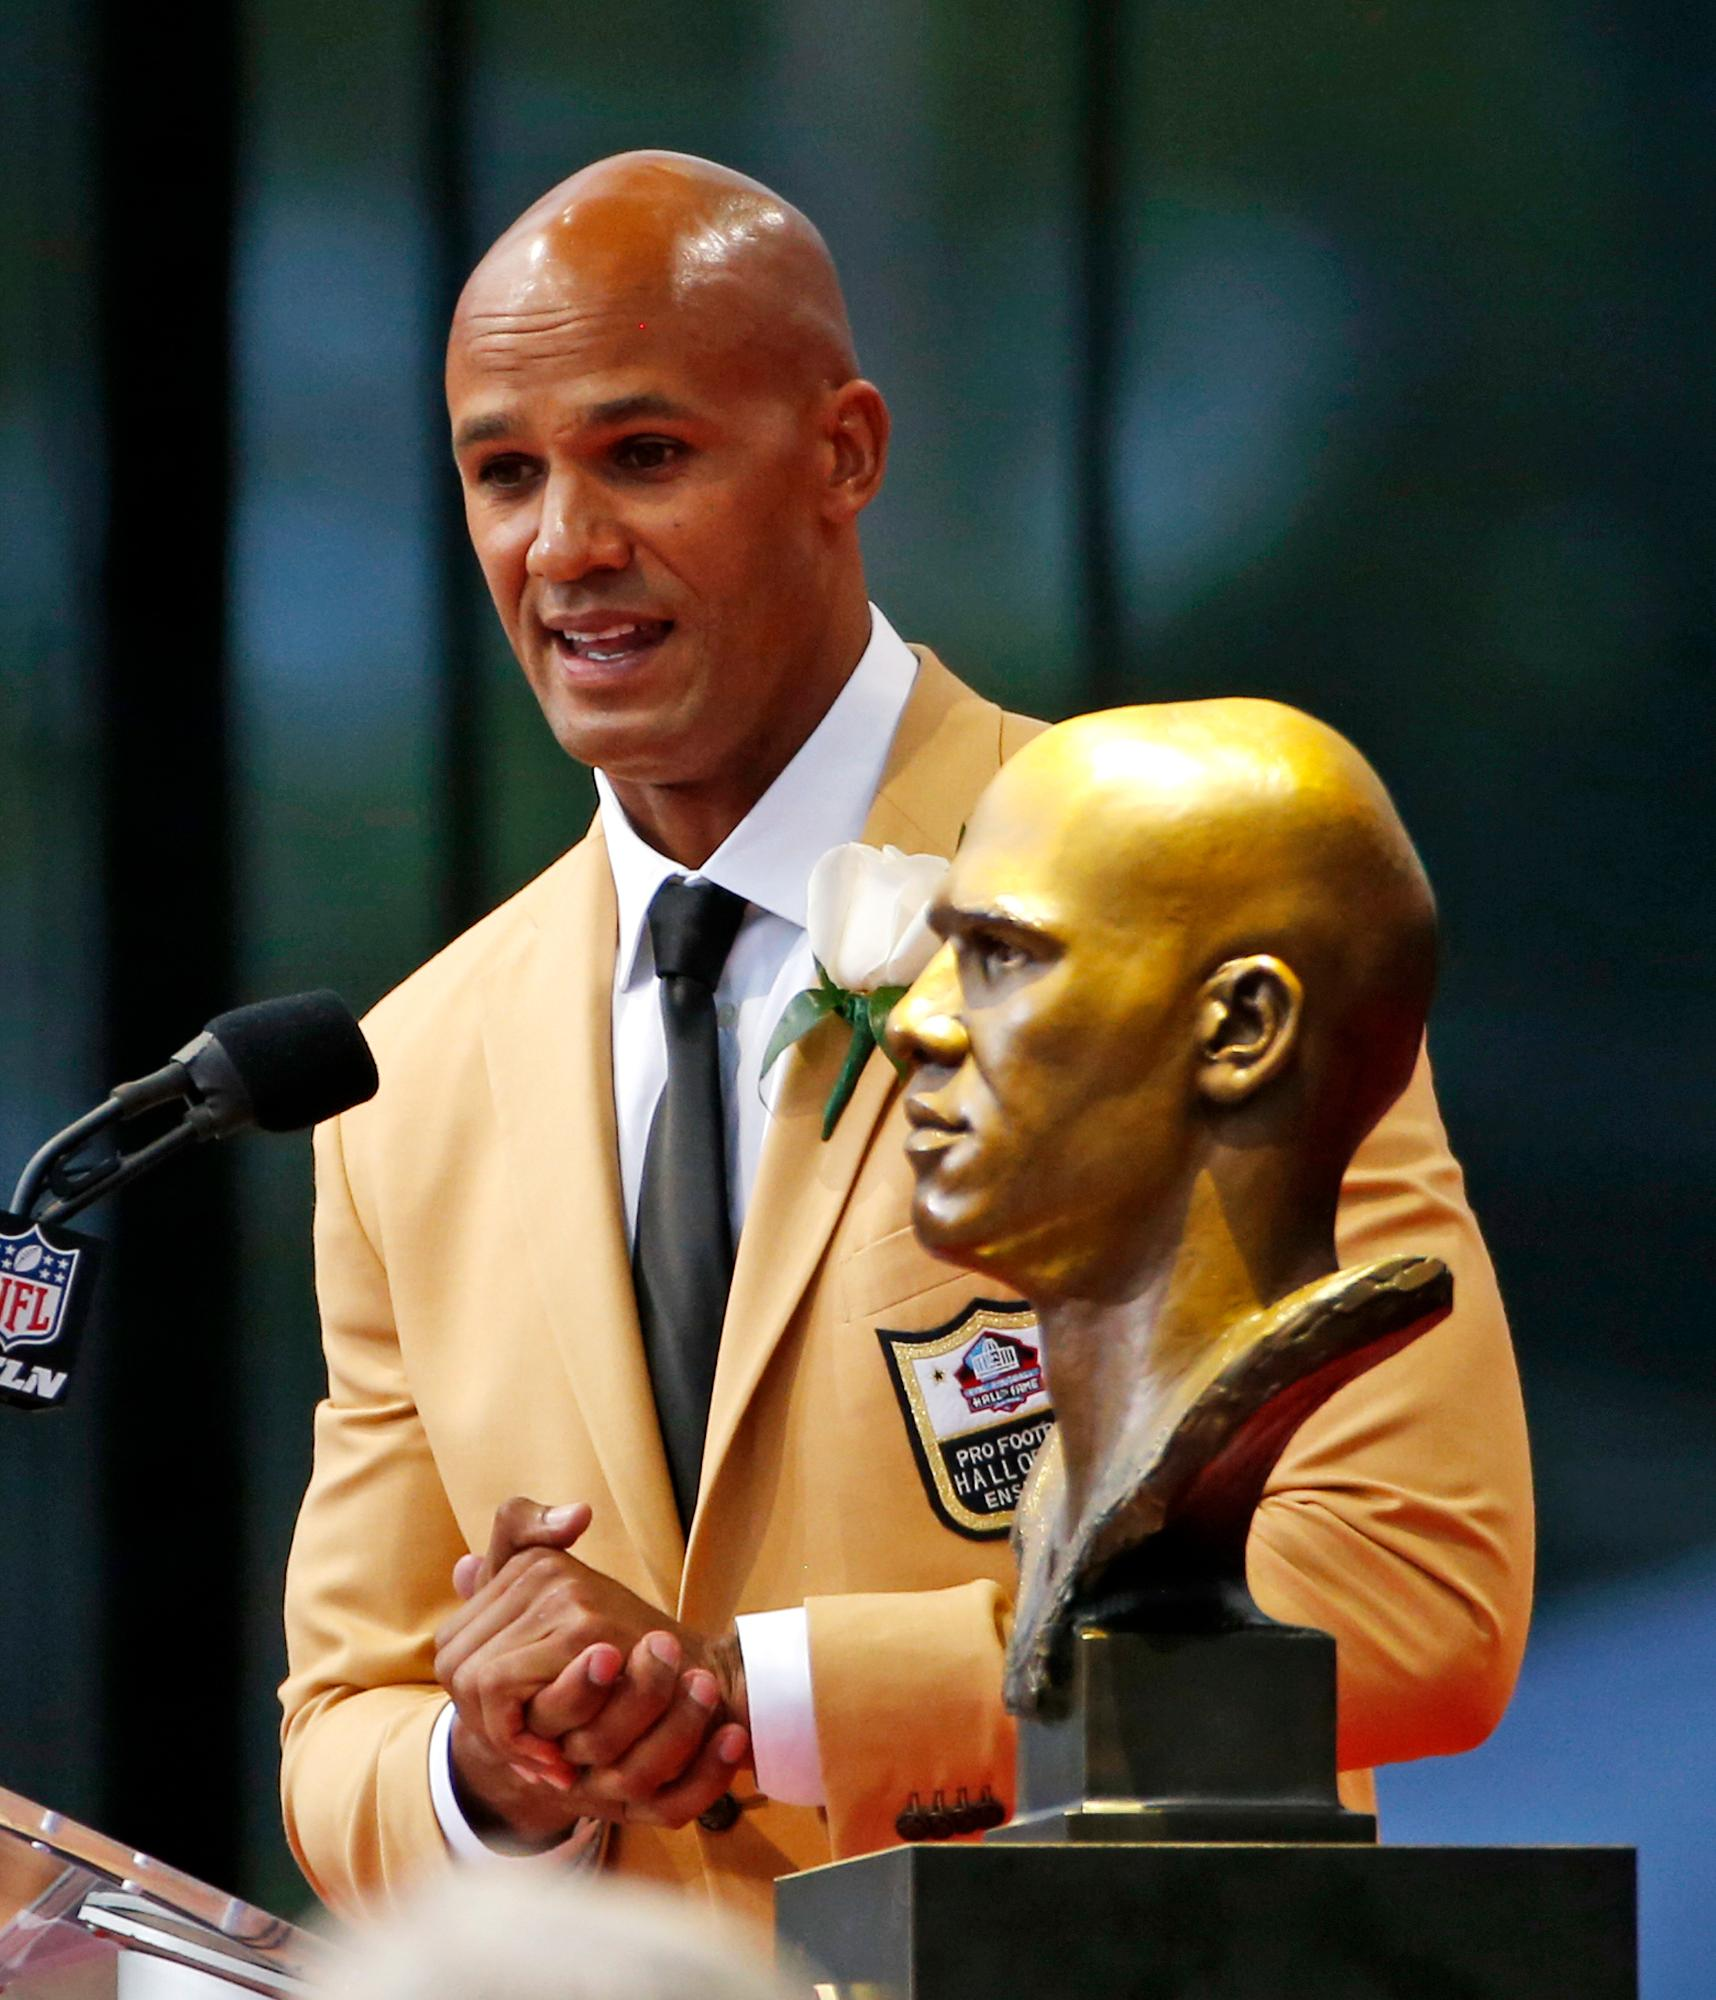 Jason Taylor speaks during his induction at the Pro Football Hall of Fame on Saturday, Aug. 5, 2017, in Canton, Ohio. (AP Photo/Gene J. Puskar)